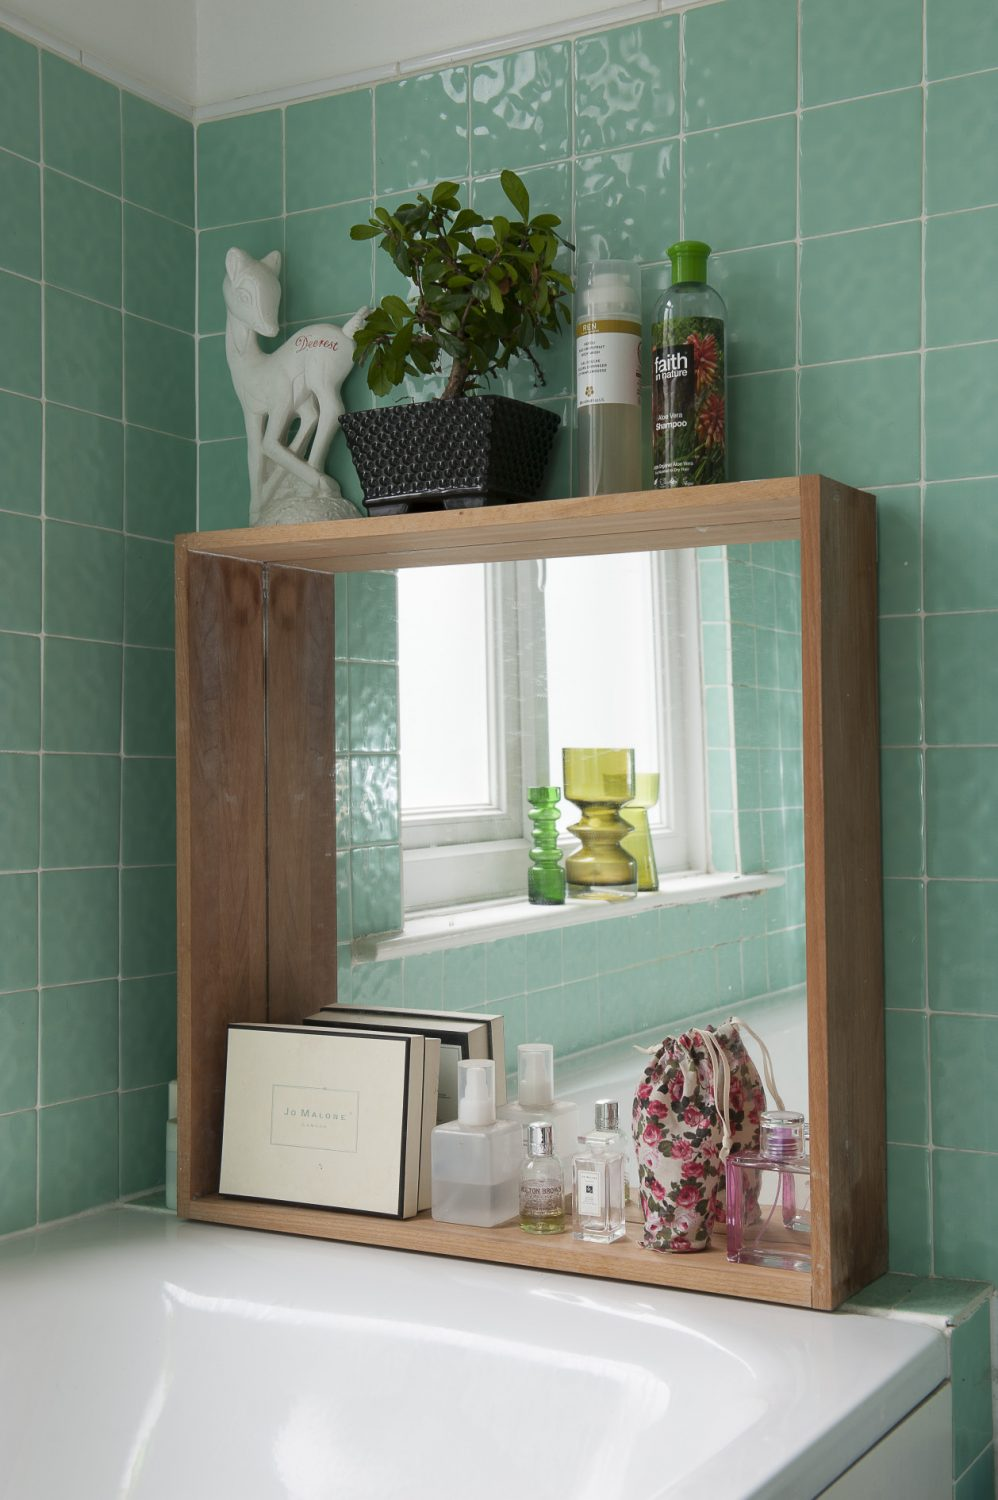 Mint green tiles give the bathroom a crisp, fresh feel